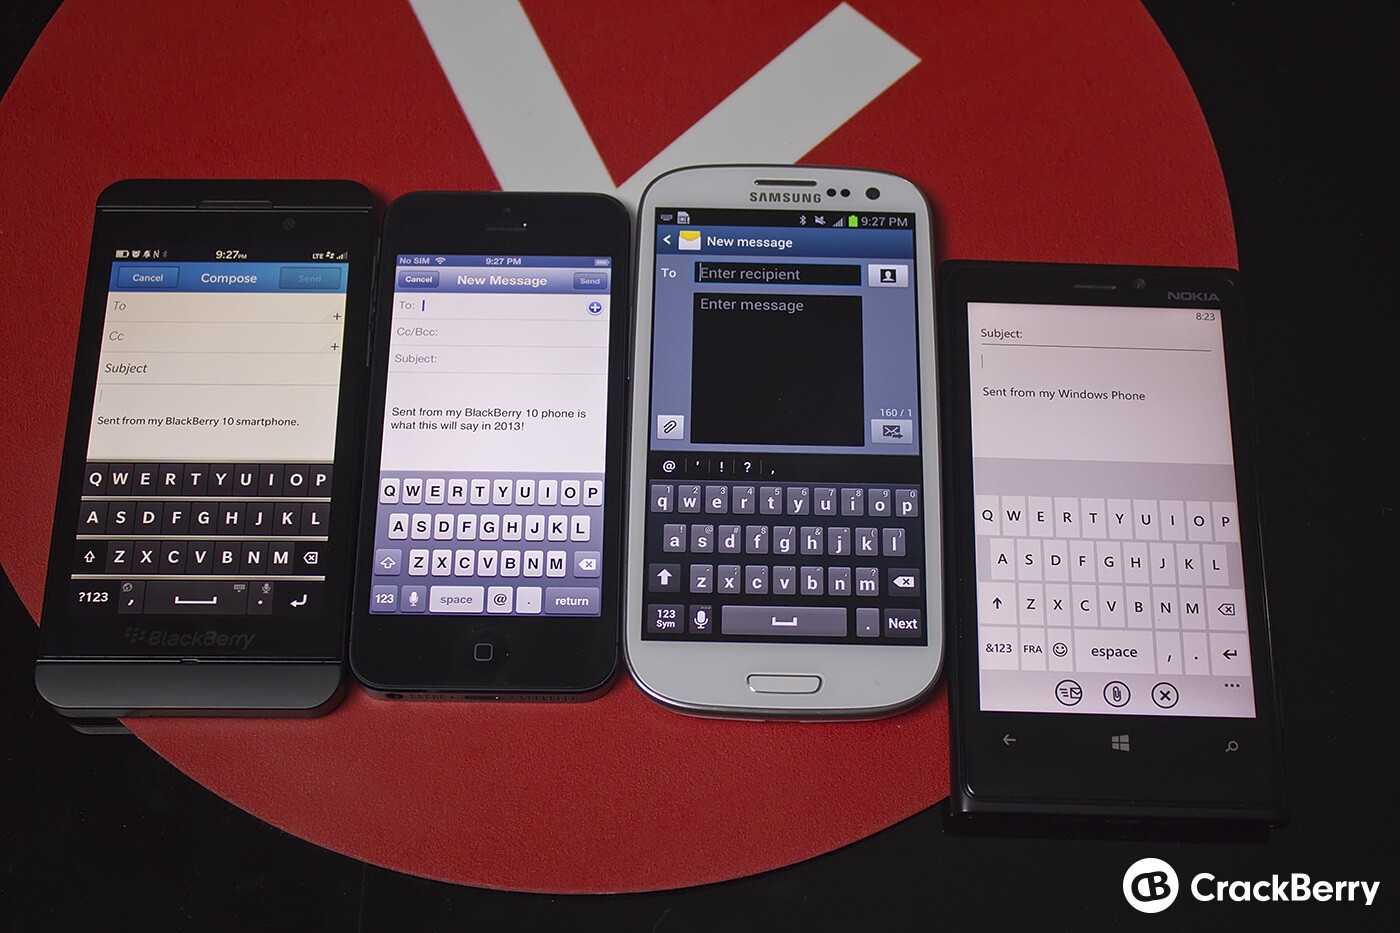 BlackBerry Z10 keyboard compared to iPhone 5, Samsung Galaxy S III, and Nokia Lumia 920 keyboards